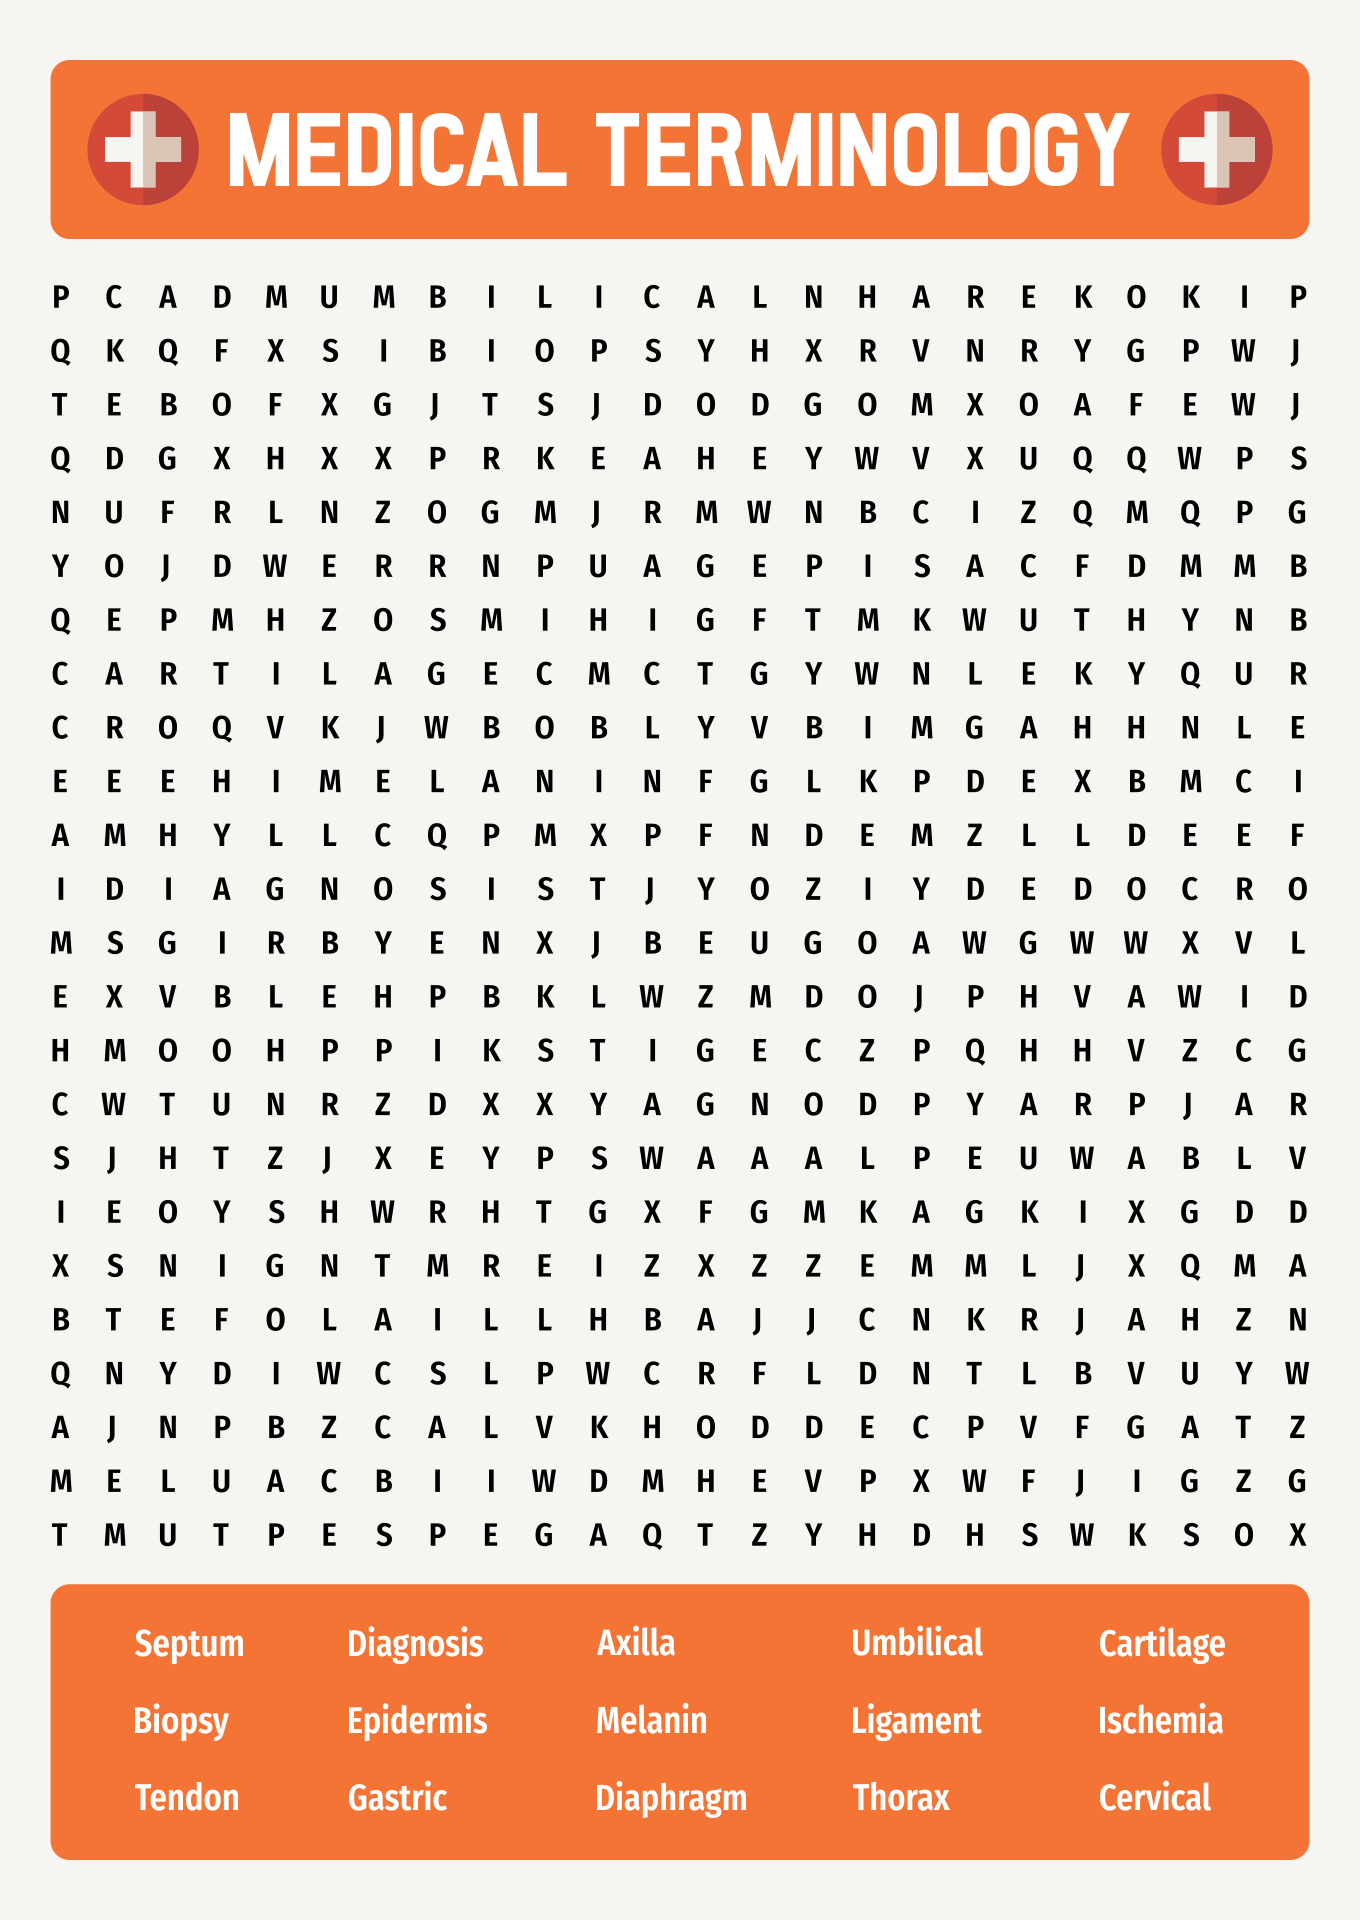 worksheet Free Printable Medical Terminology Worksheets printable medical terminology worksheets abitlikethis of free medical